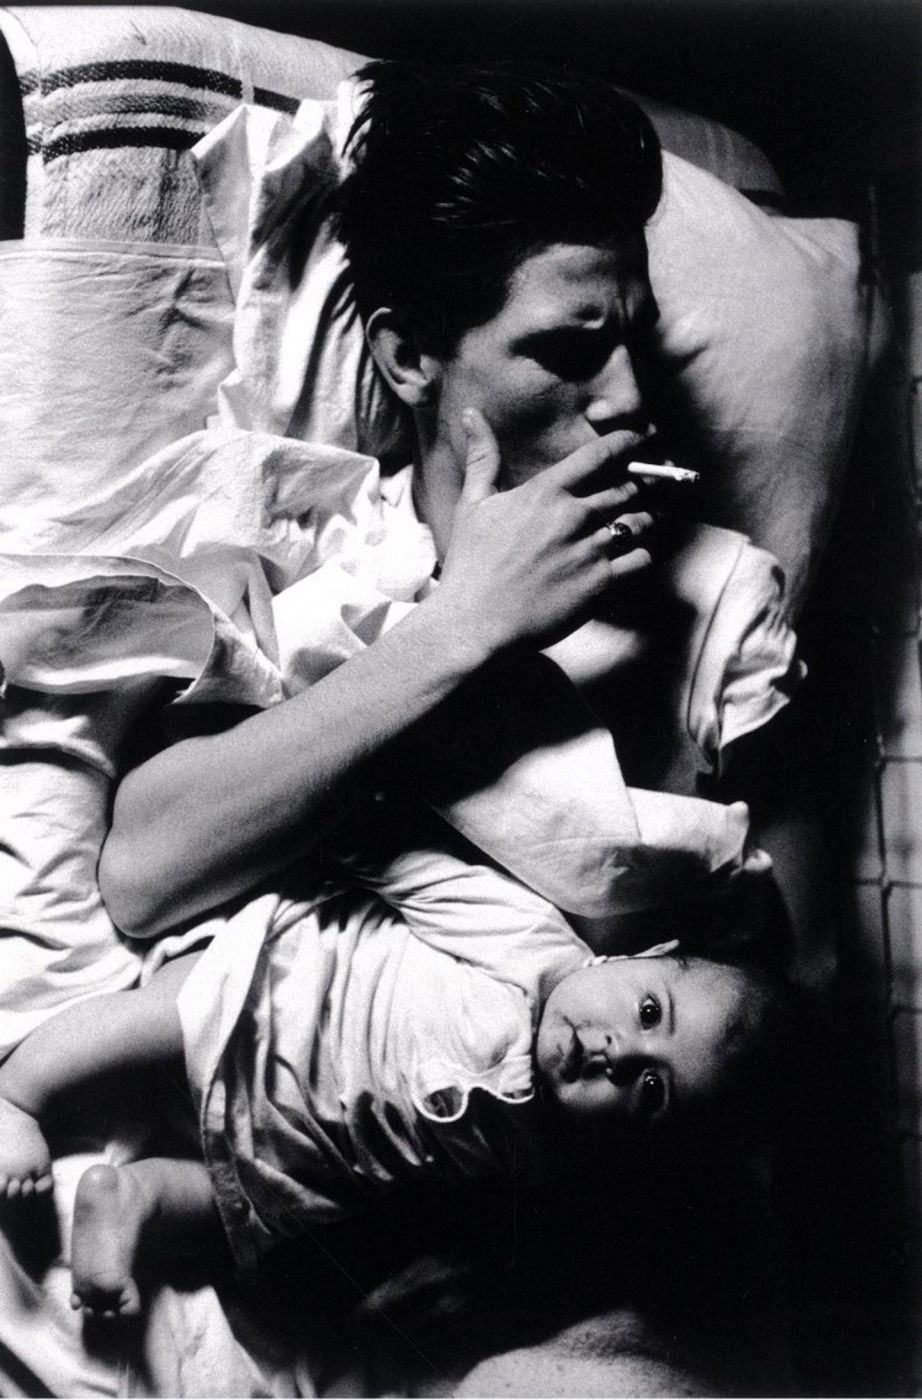 Larry Clark: Kiss the Past Hello